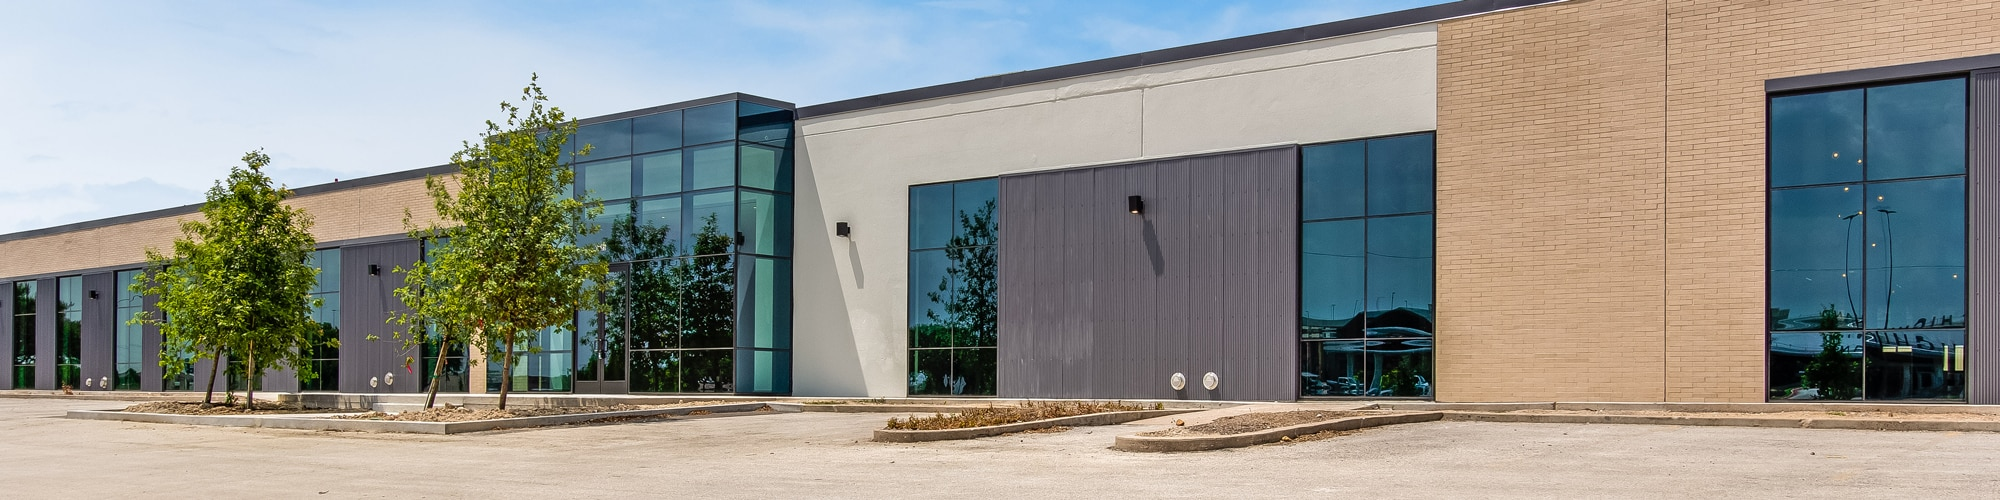 Highland-Tech-Center-May-2020-Exterior-2